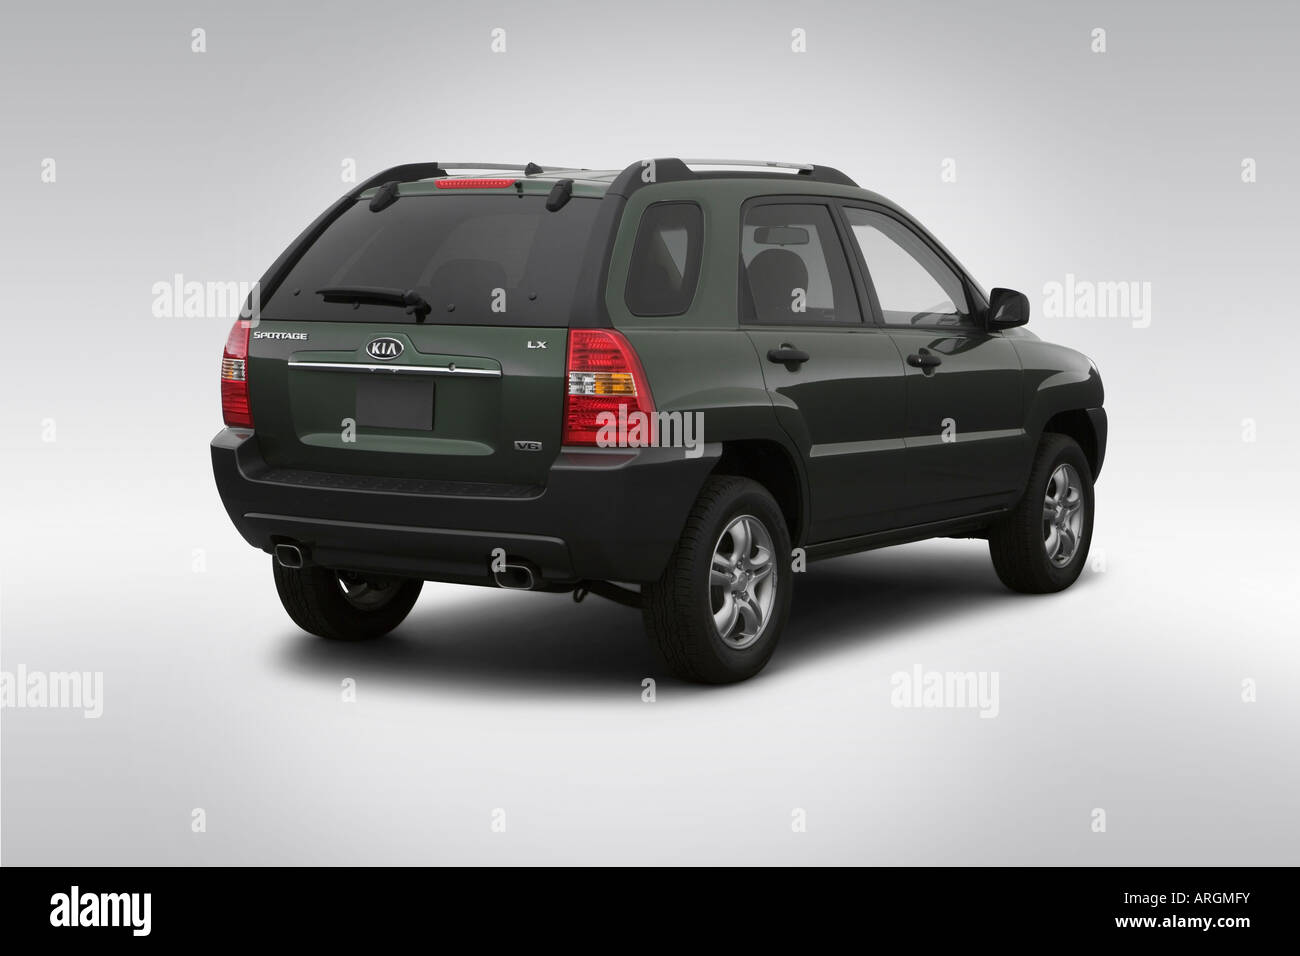 2007 kia sportage lx v6 in green rear angle view stock photo royalty free image 16050686 alamy. Black Bedroom Furniture Sets. Home Design Ideas